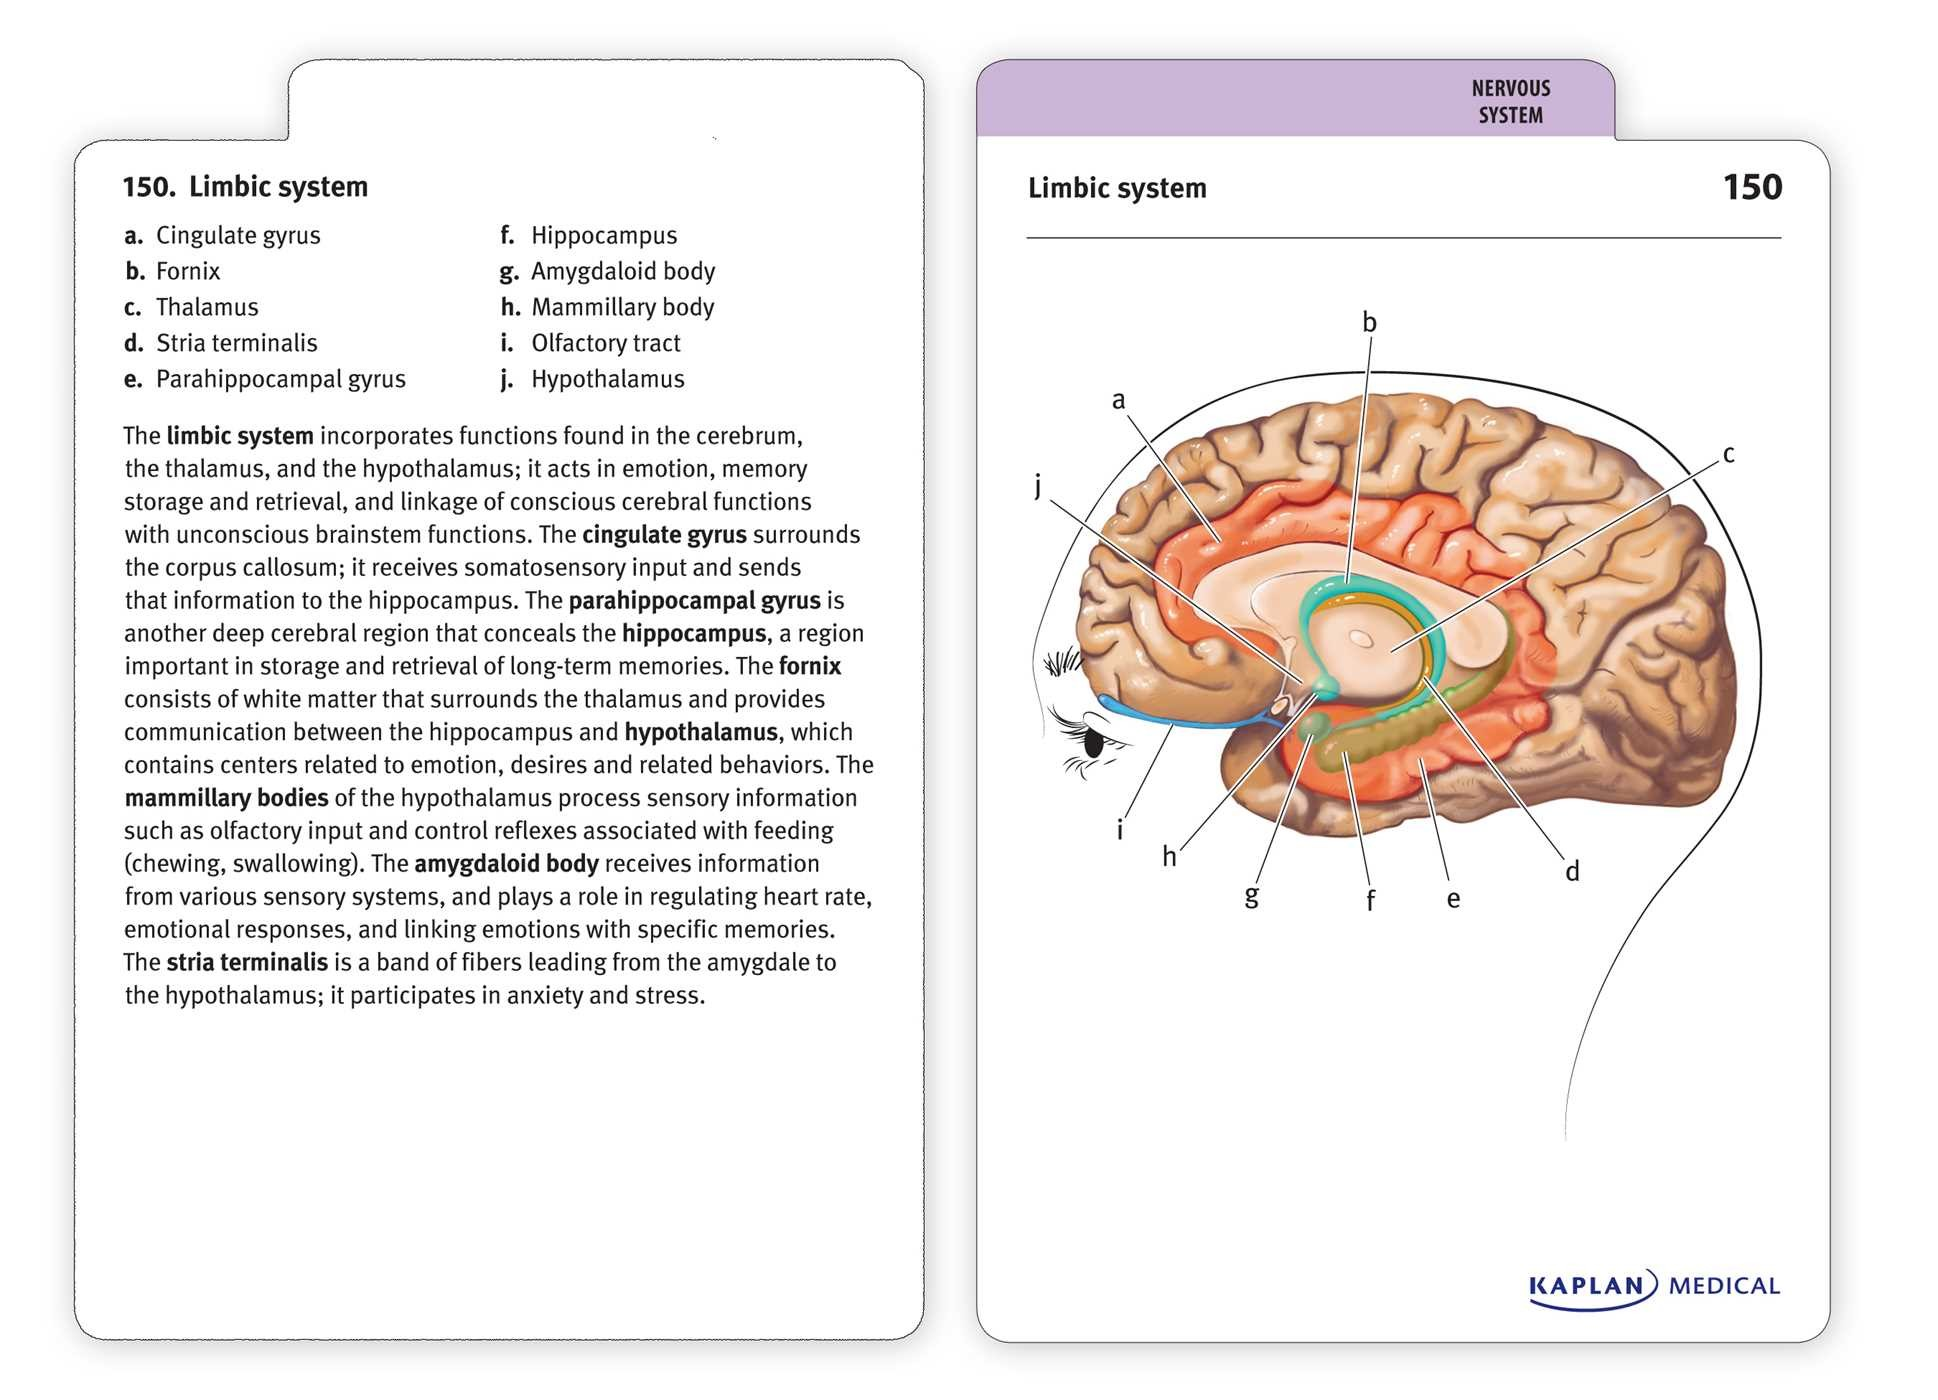 Anatomy-flashcards-9781607149842.in05